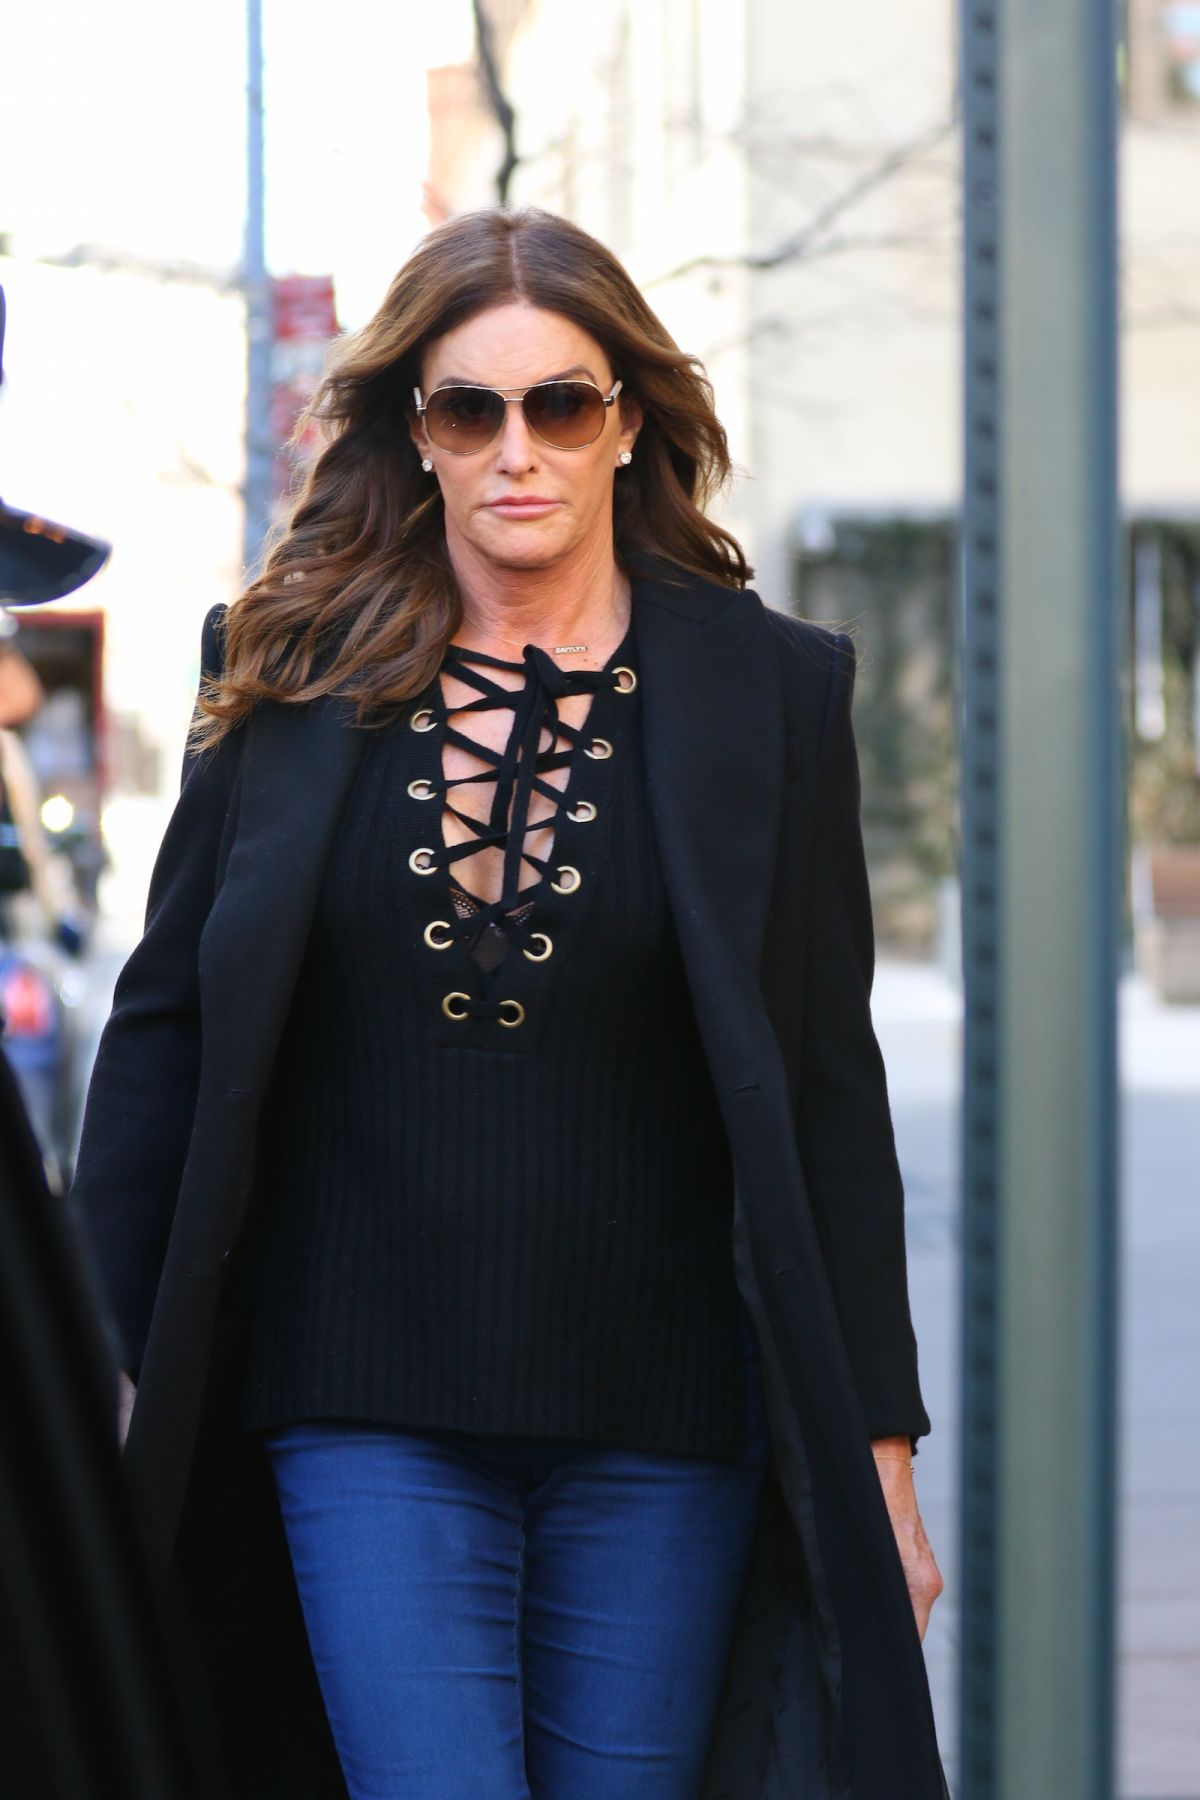 CAITLYN JENNER Leaves Her Hotel in New York 02/11/2016